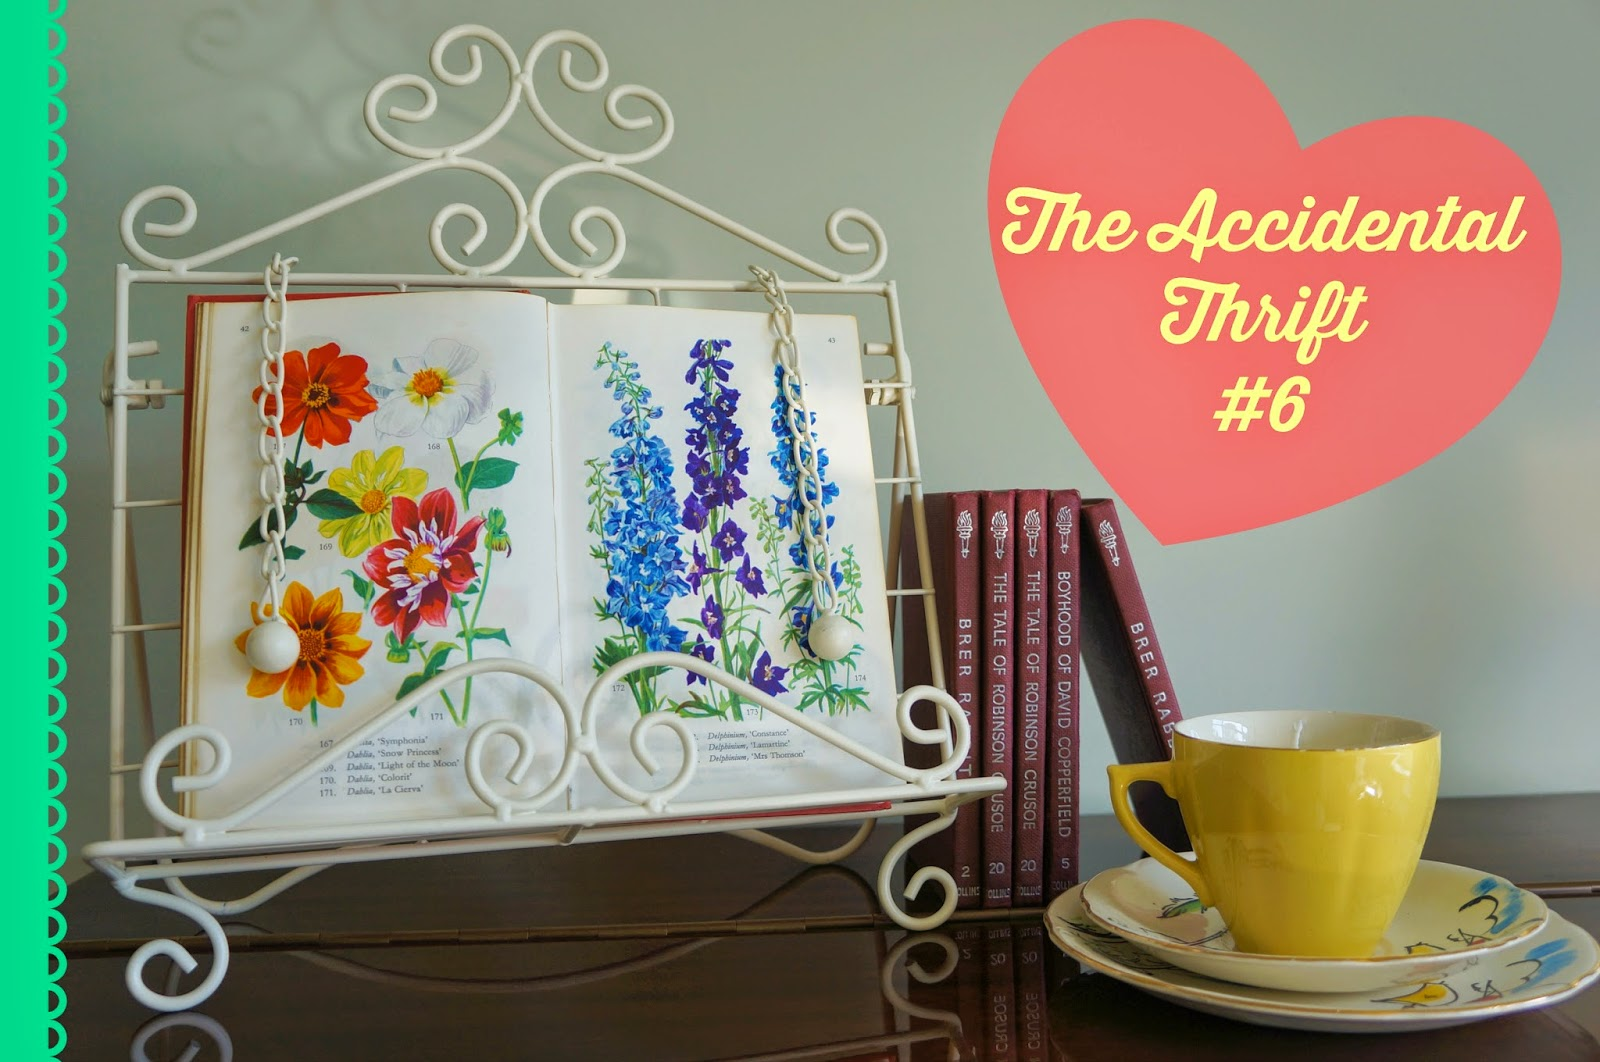 THE ACCIDENTAL THRIFT #6 :: COME SATURDAY